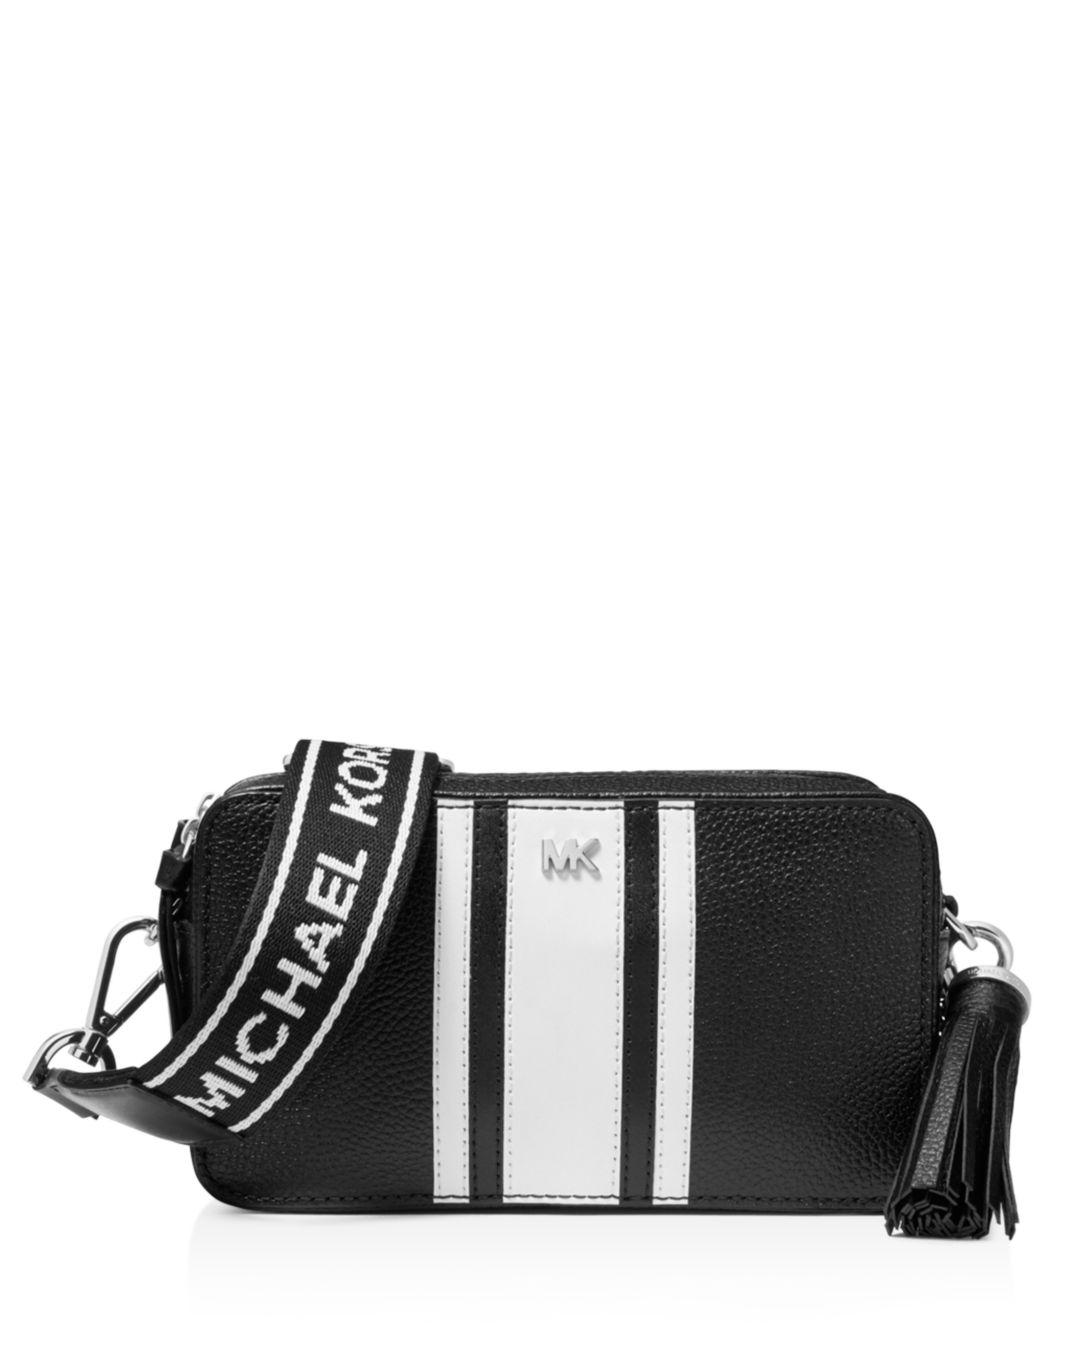 b5c86064472ced Michael Kors Small Striped Leather Camera Crossbody in Black - Save ...